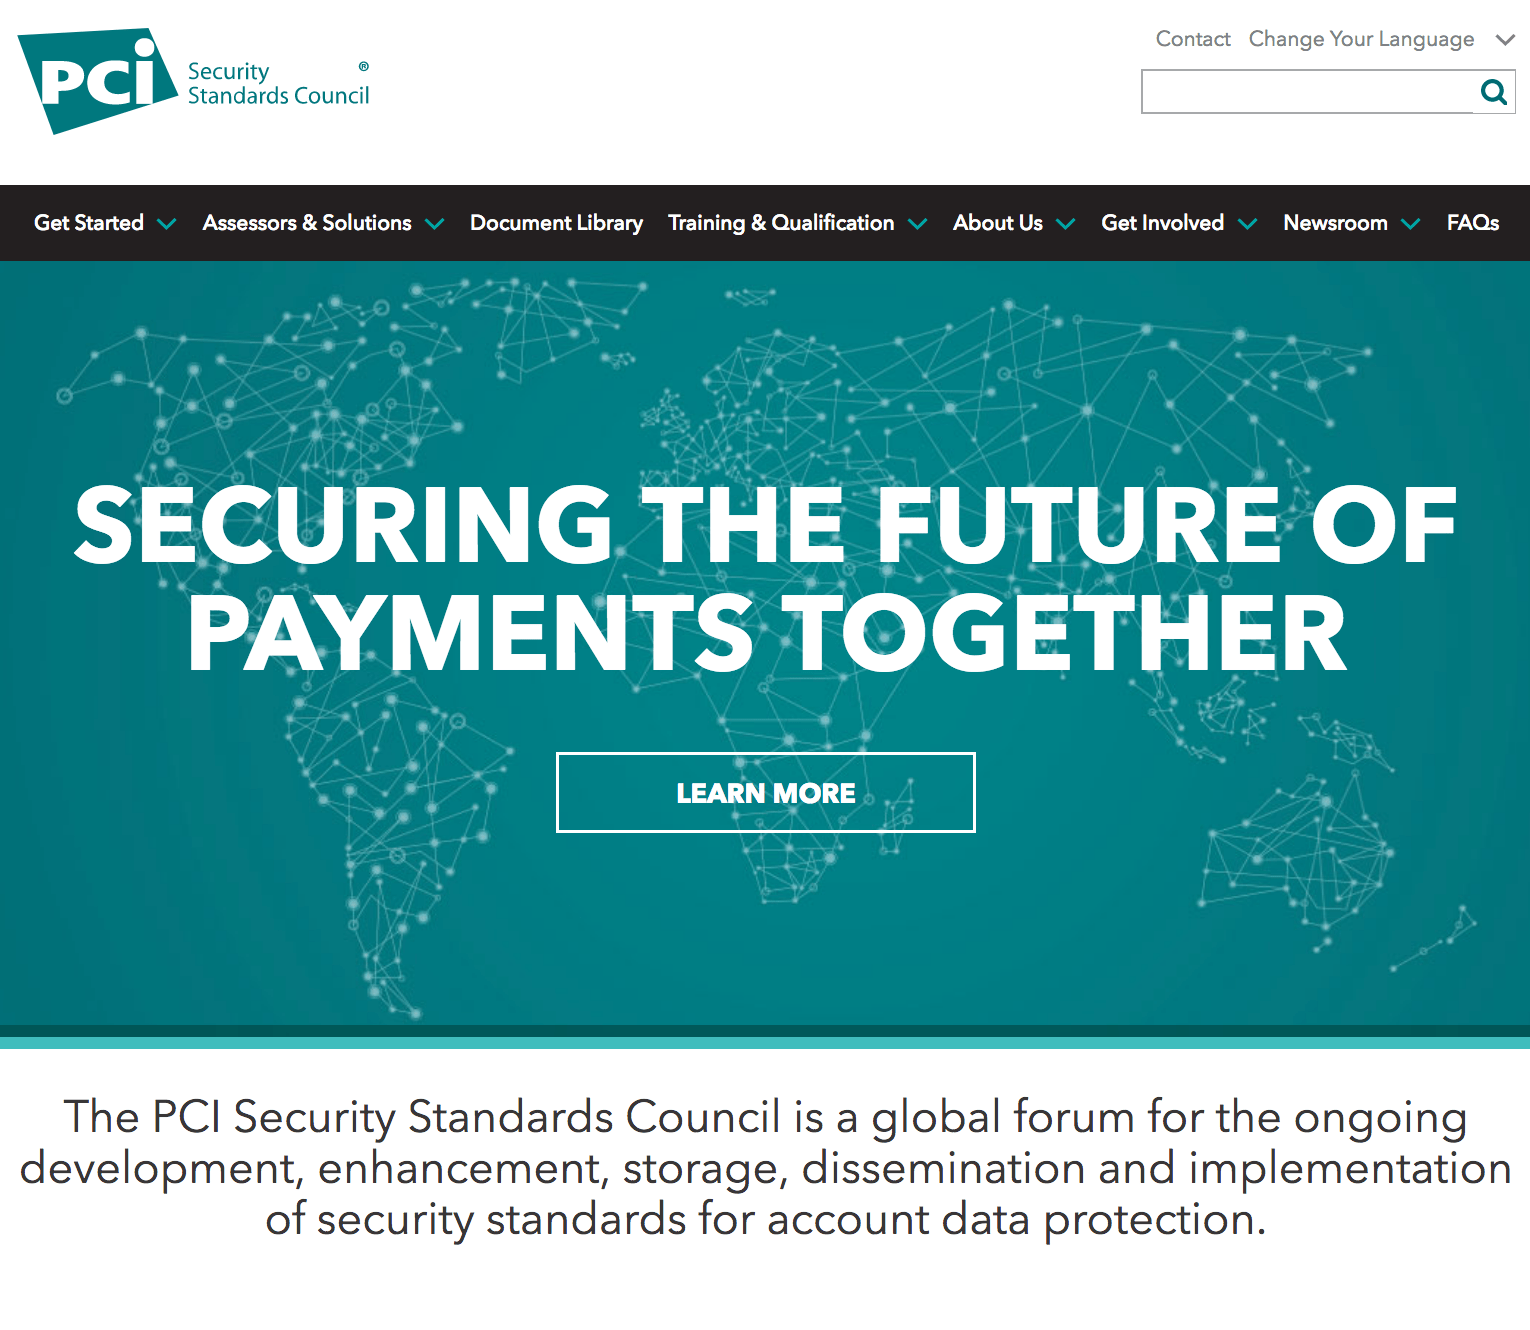 PCI Security Standards Council Homepage